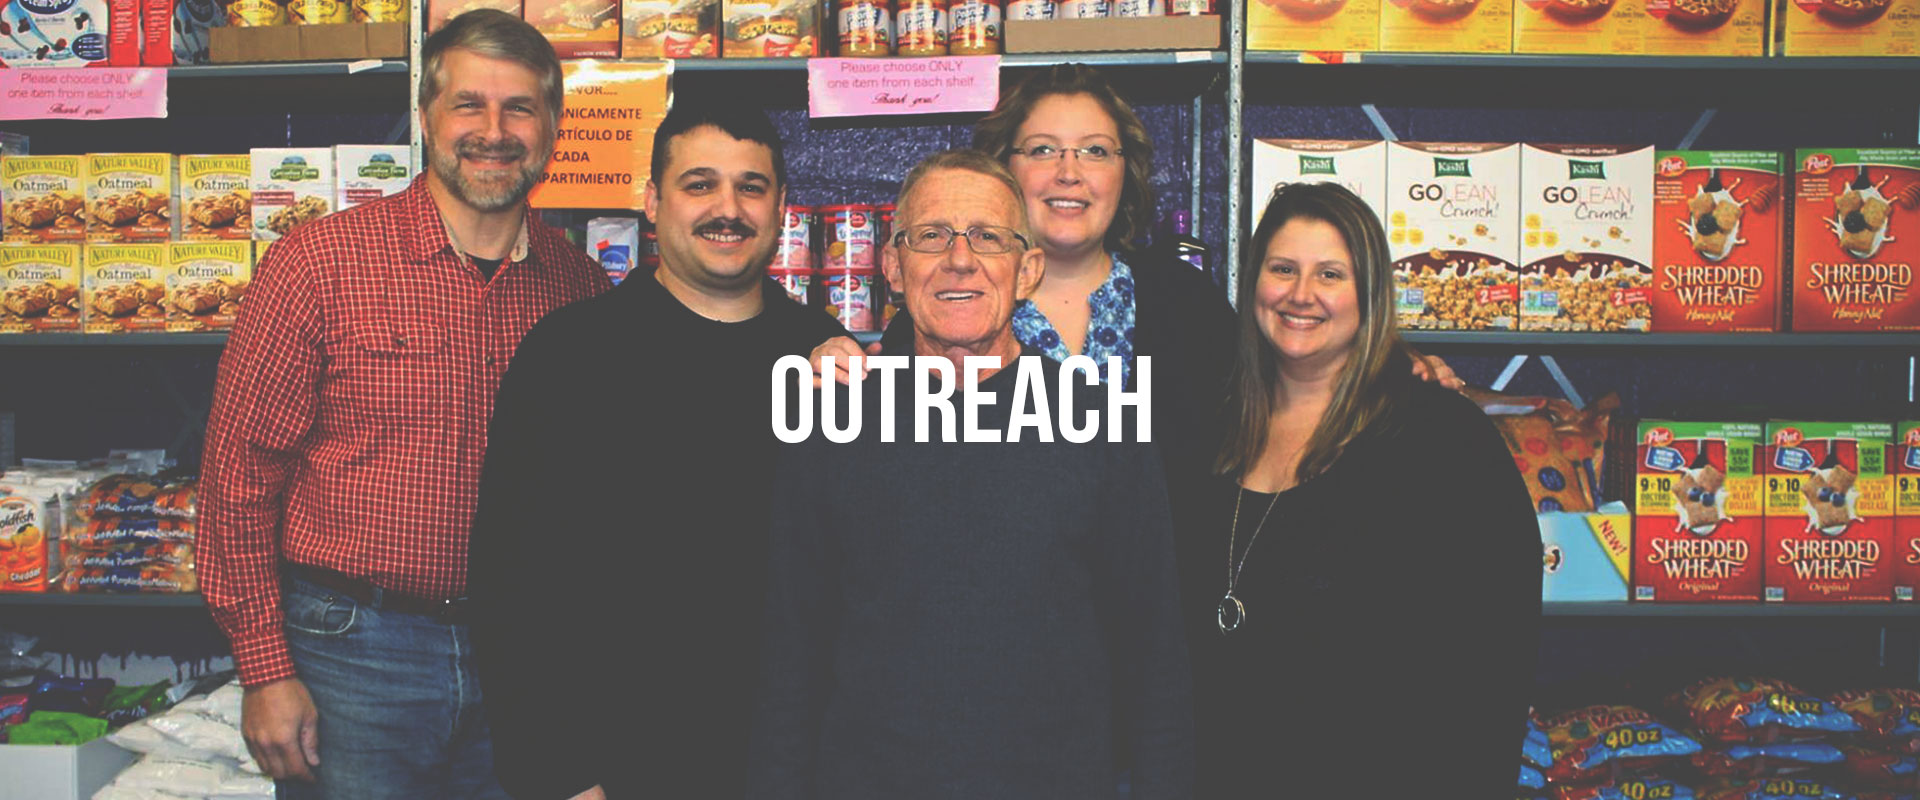 outreach-header